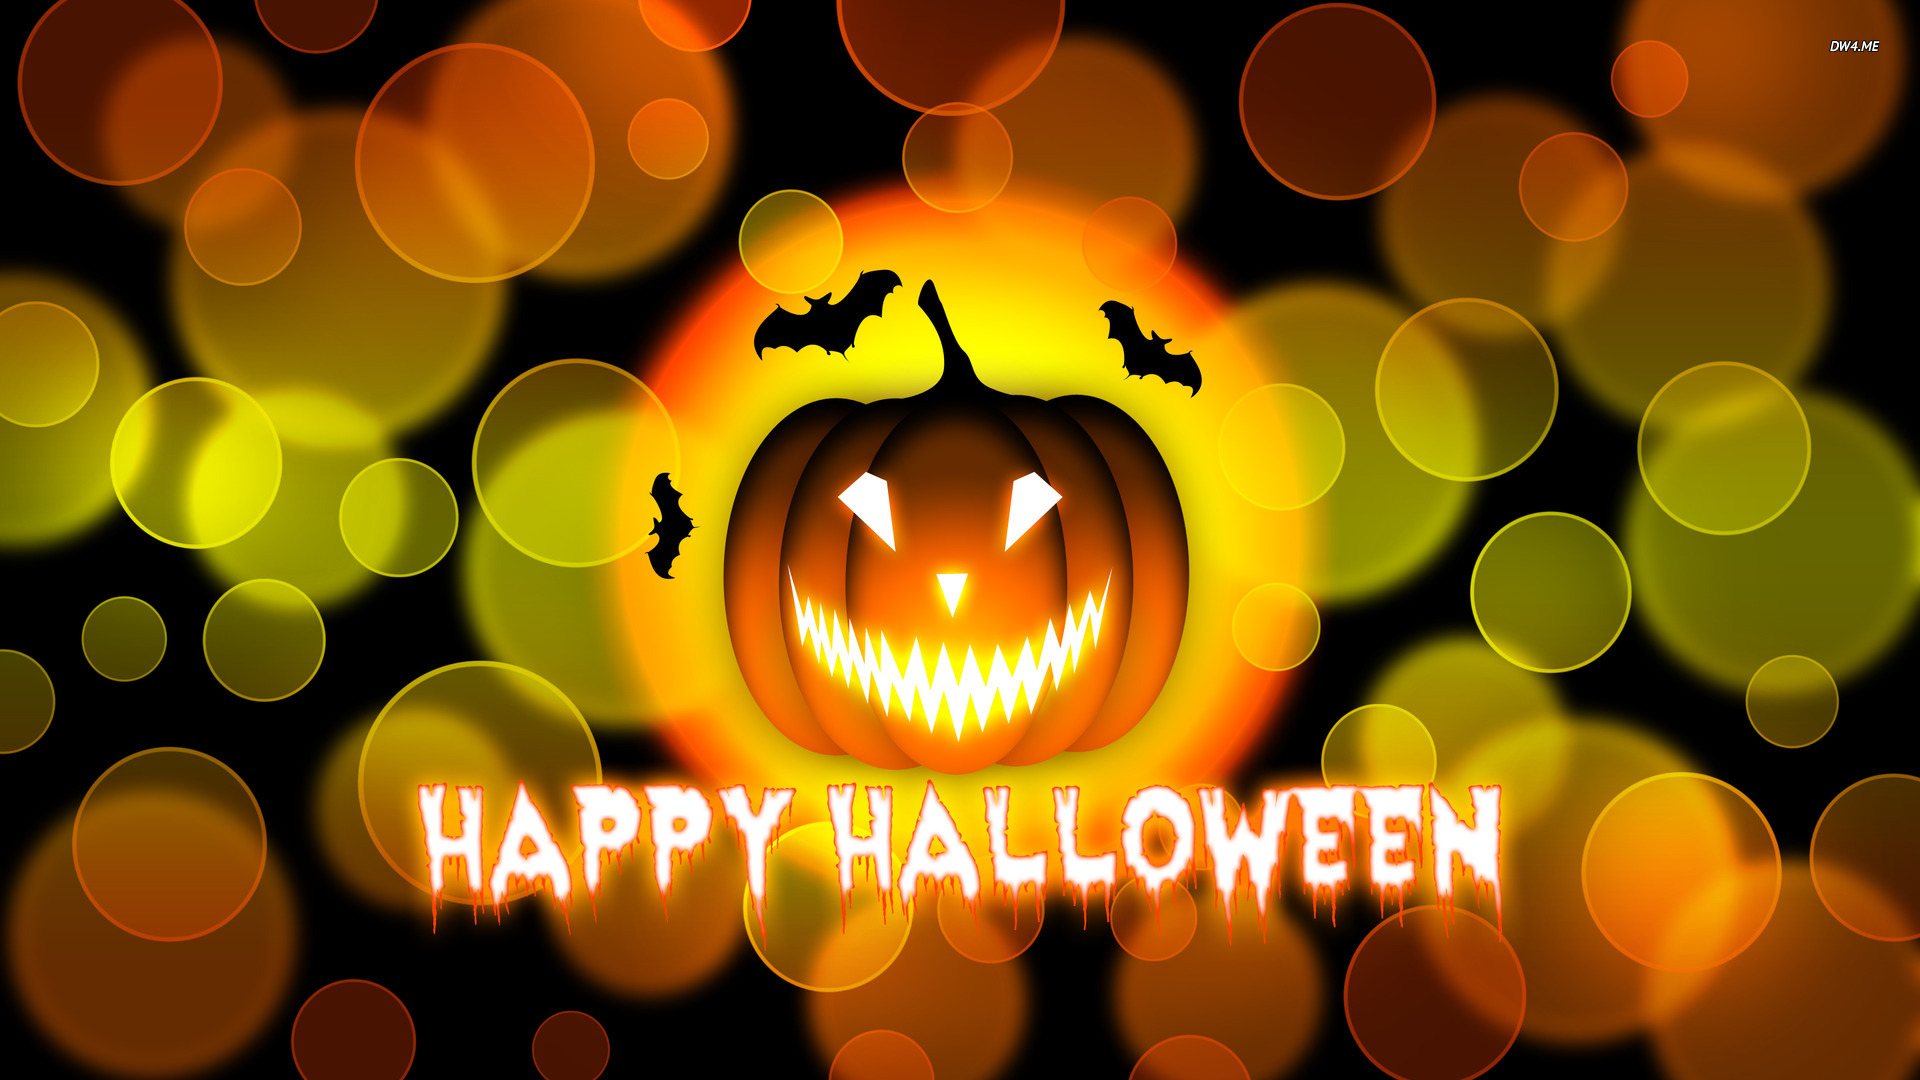 Happy Halloween wallpaper   Holiday wallpapers   1757 1920x1080